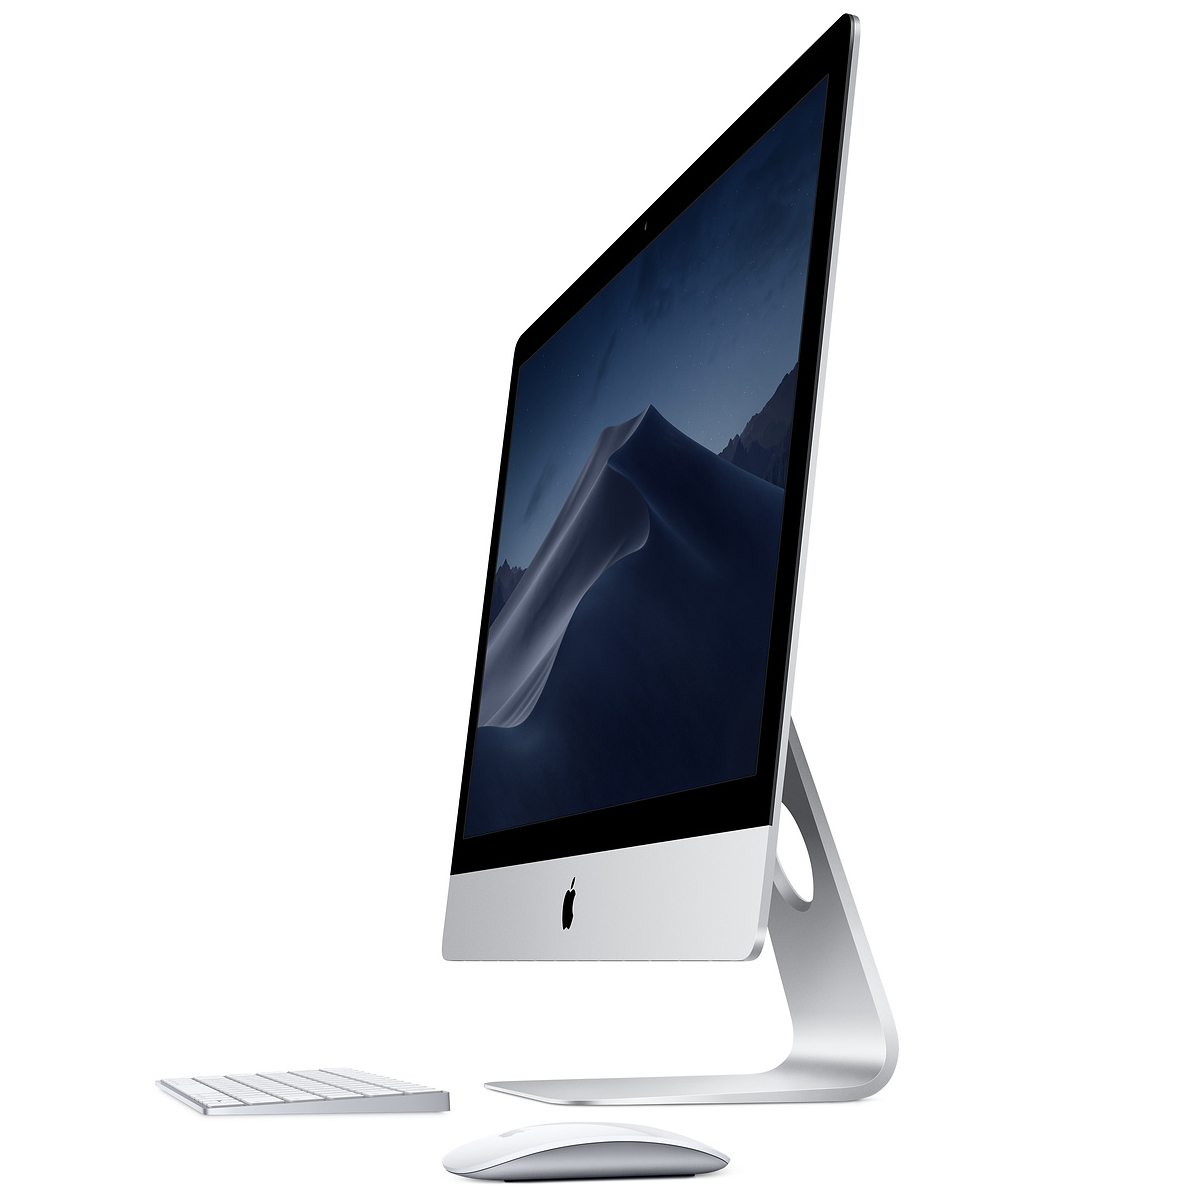 Apple IMAC 27* 3.7GHz 6-core Intel Core i5, Turbo Boost up to 4.6GHz/8GB/2TB